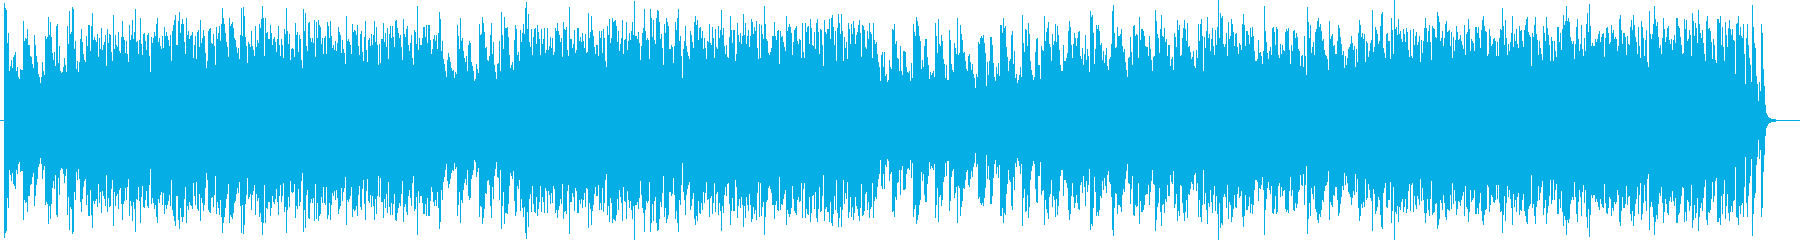 Nearly futuristic melodious synthein song's reproduced waveform